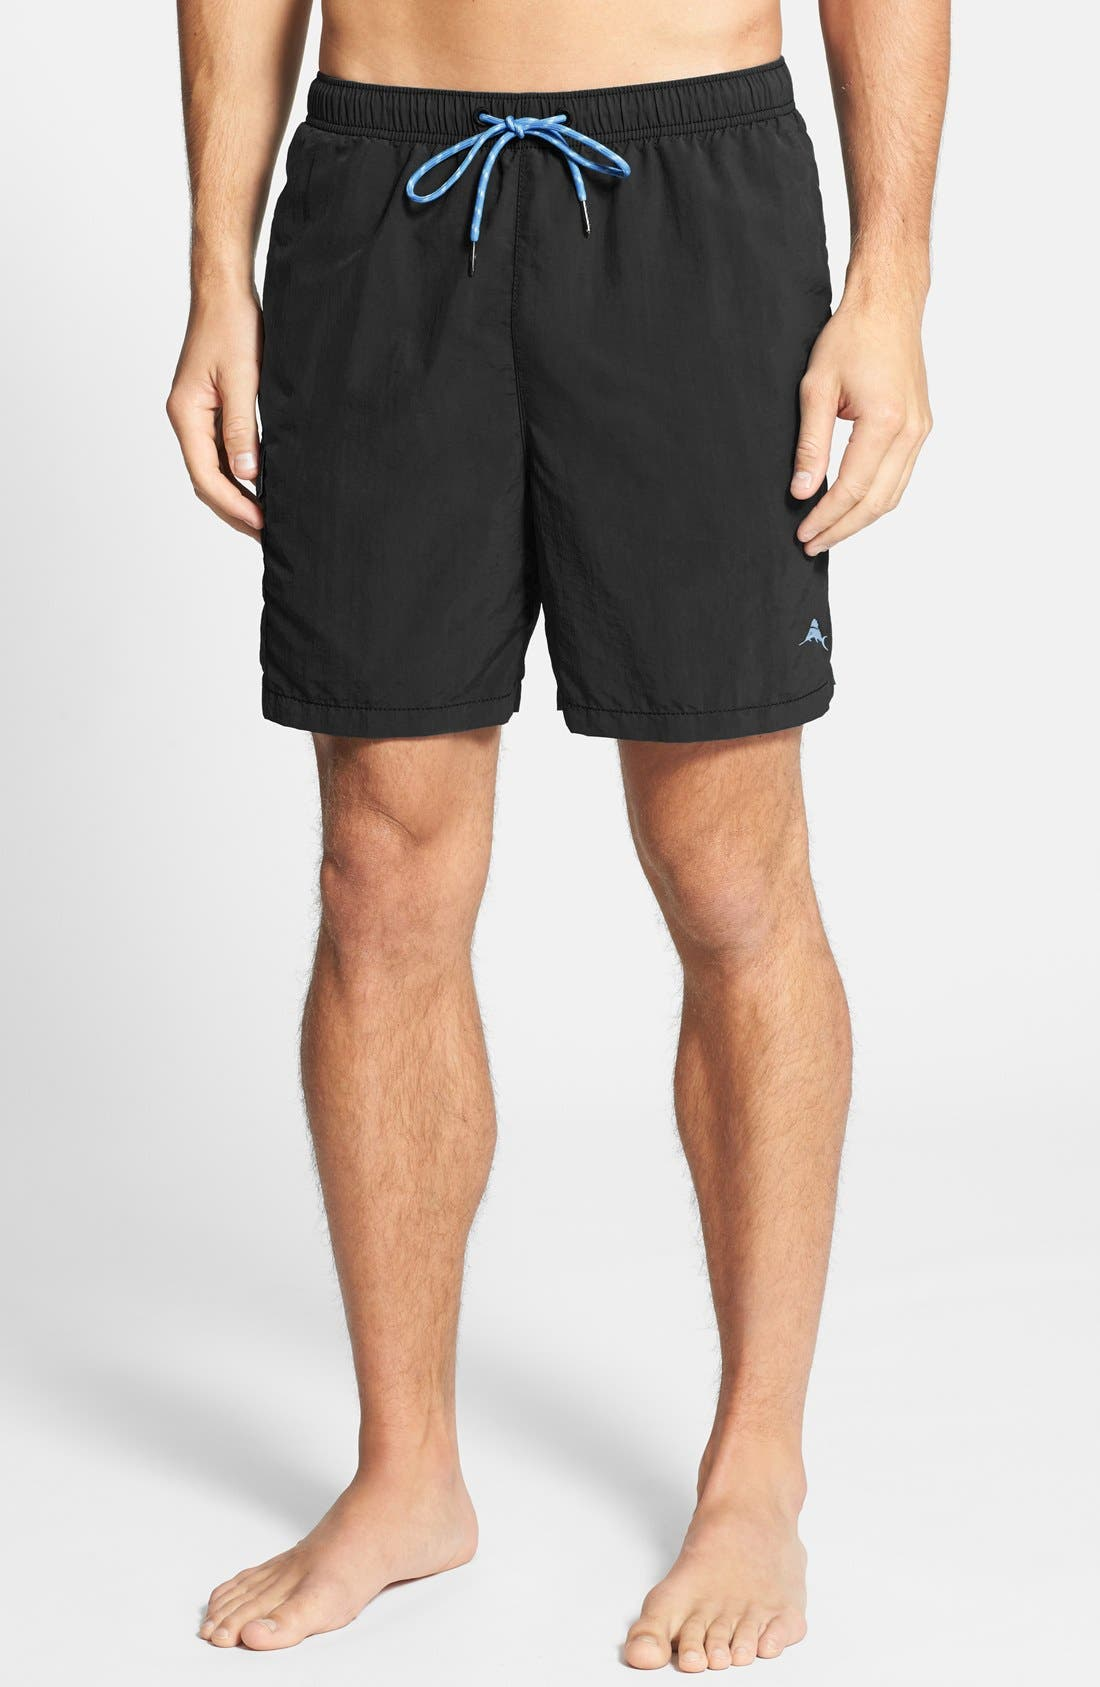 Naples Happy Go Cargo Swim Trunks,                             Main thumbnail 1, color,                             Black